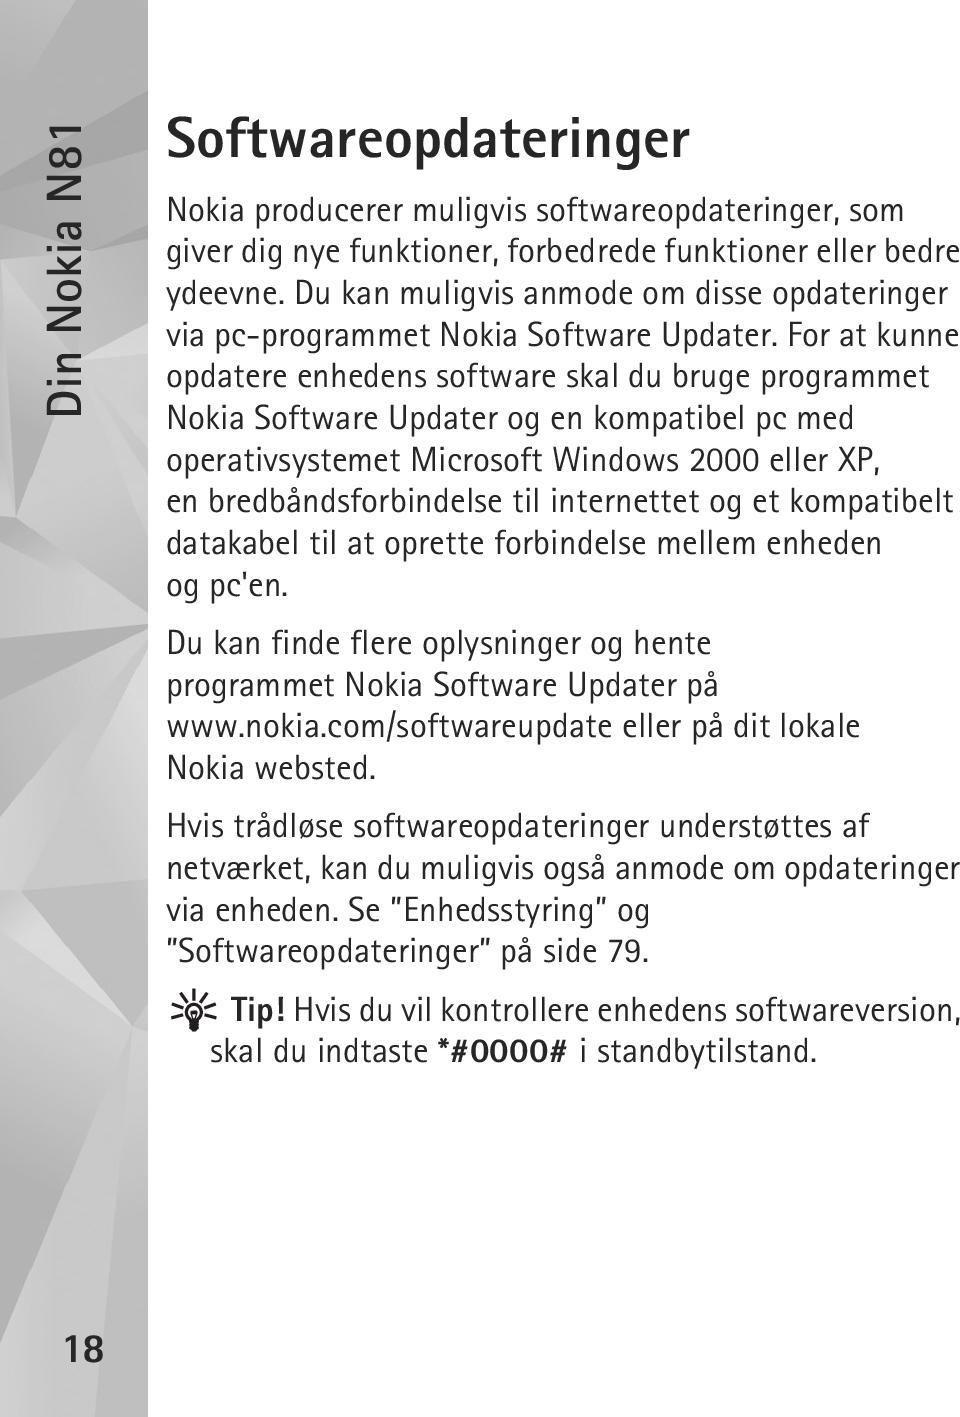 For at kunne opdatere enhedens software skal du bruge programmet Nokia Software Updater og en kompatibel pc med operativsystemet Microsoft Windows 2000 eller XP, en bredbåndsforbindelse til